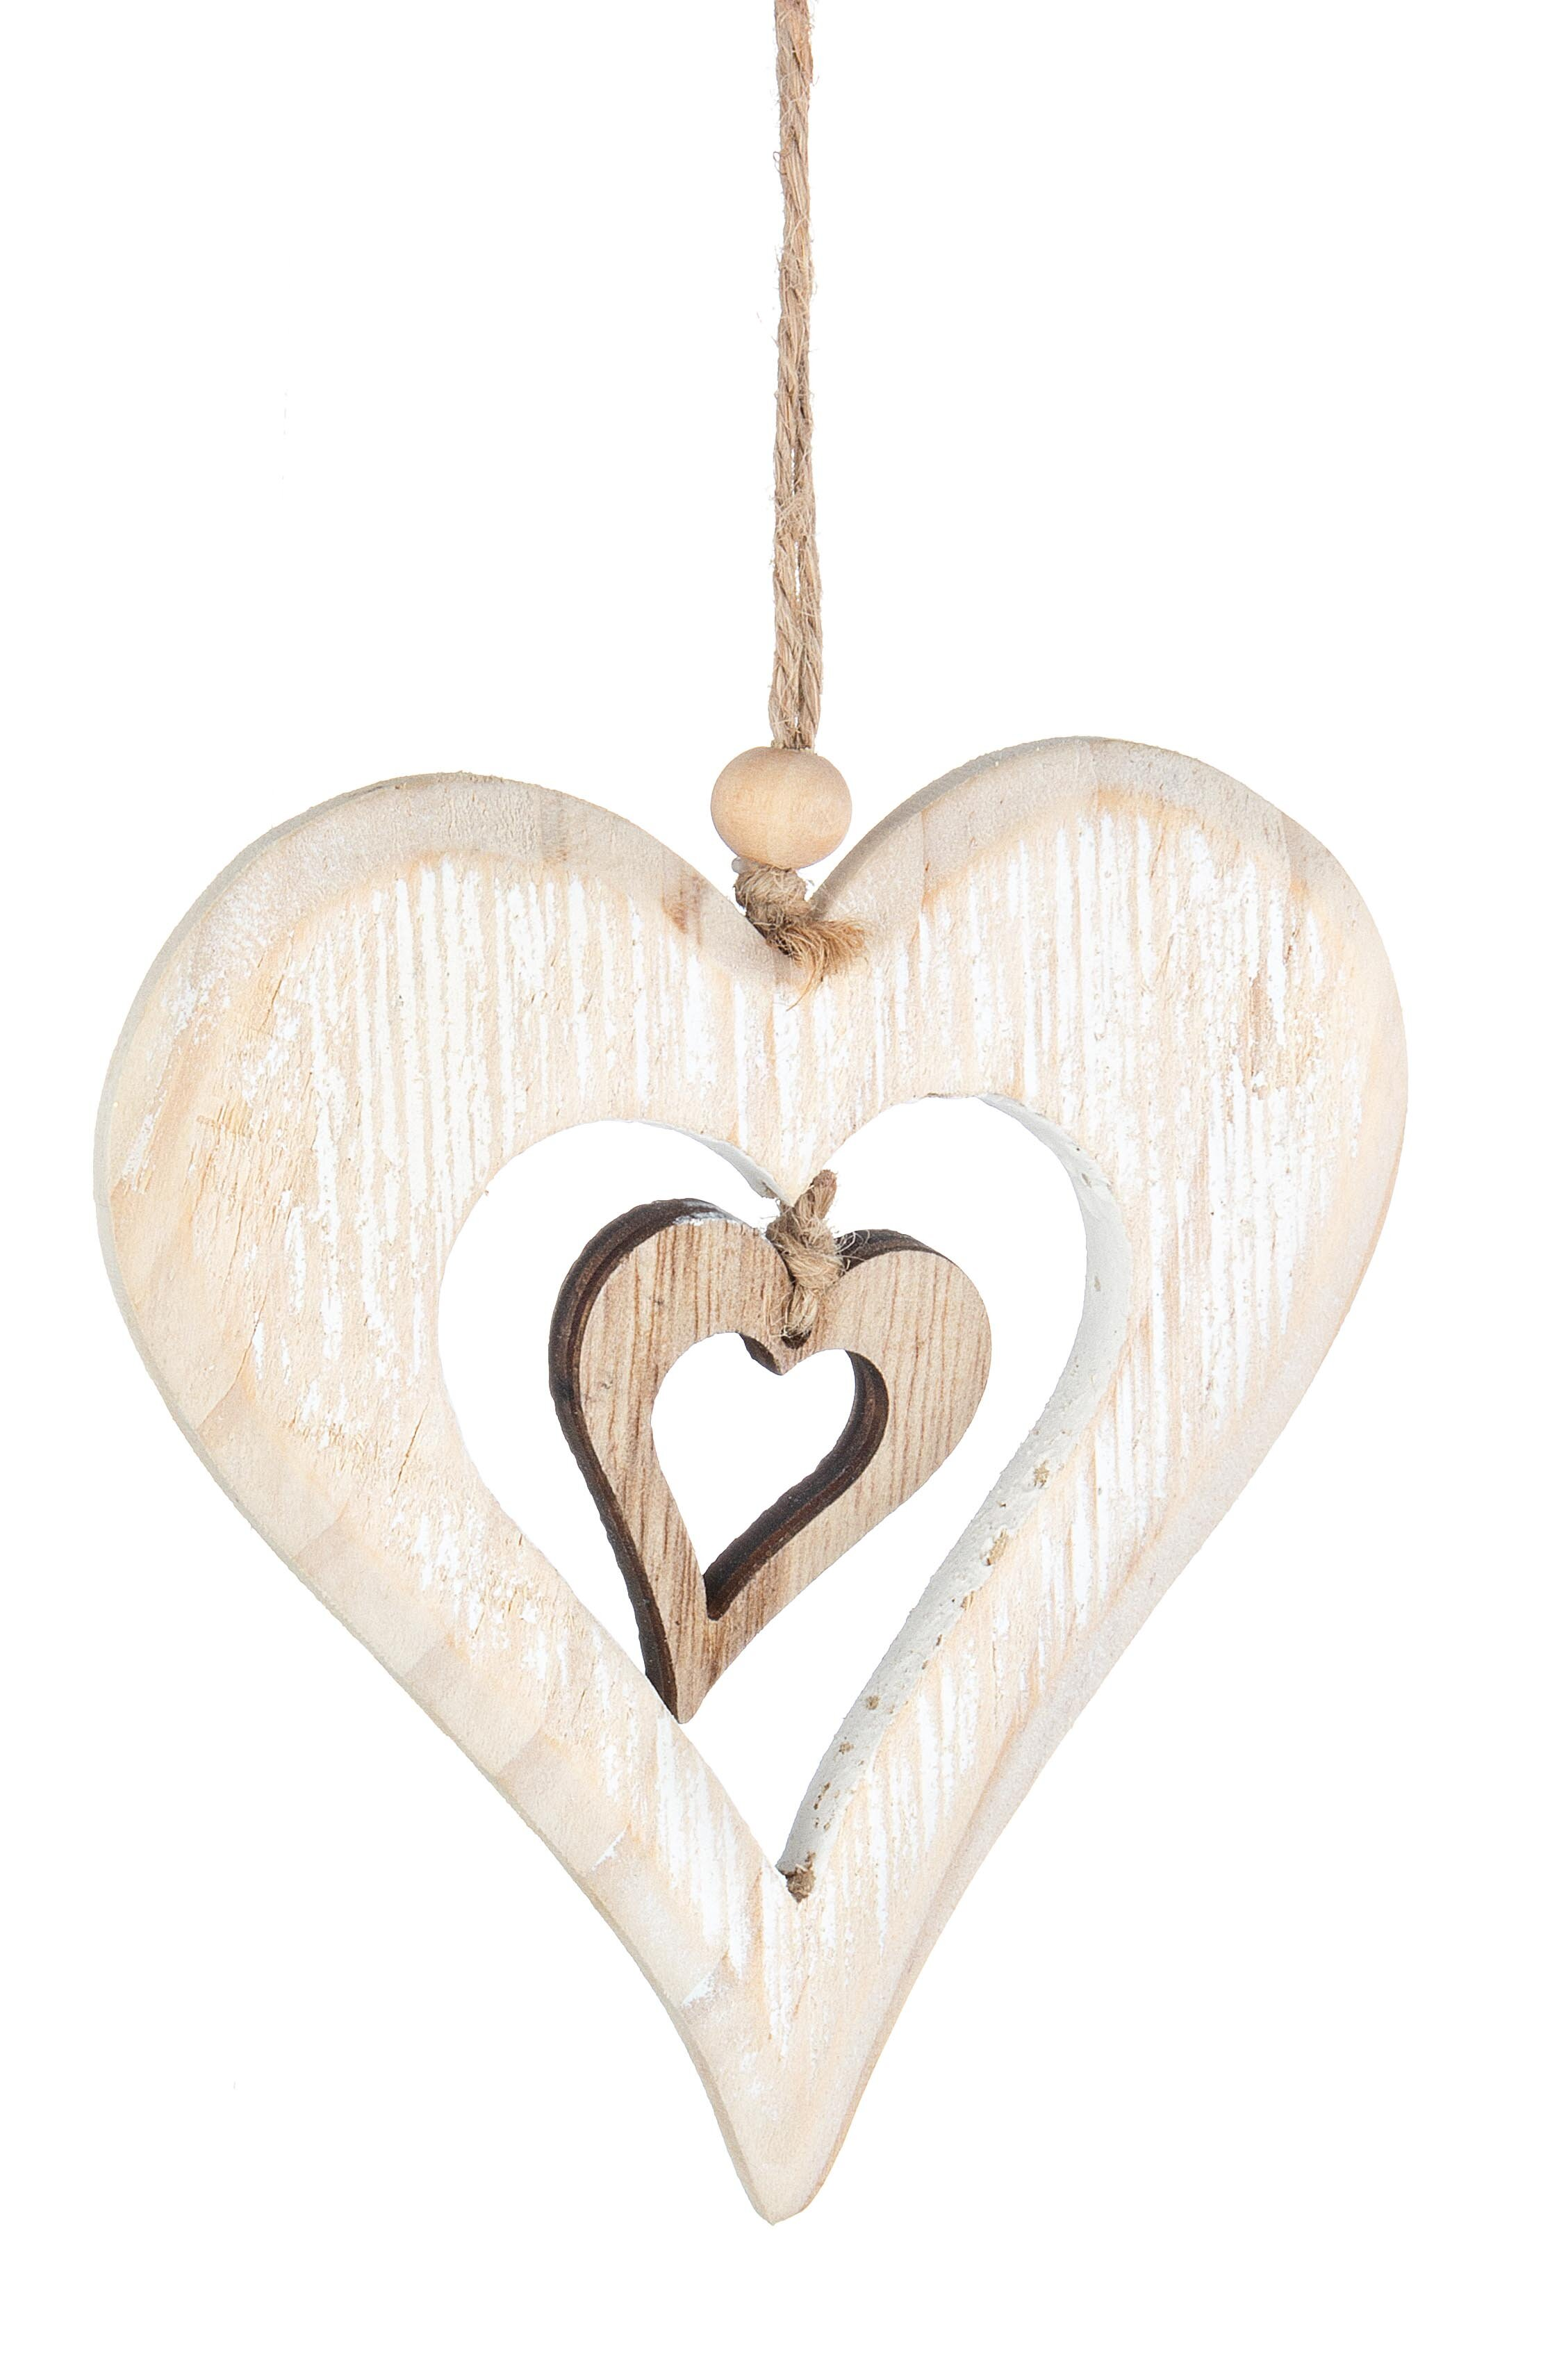 The Seasonal Aisle Allegra Heart Holiday Shaped Ornament